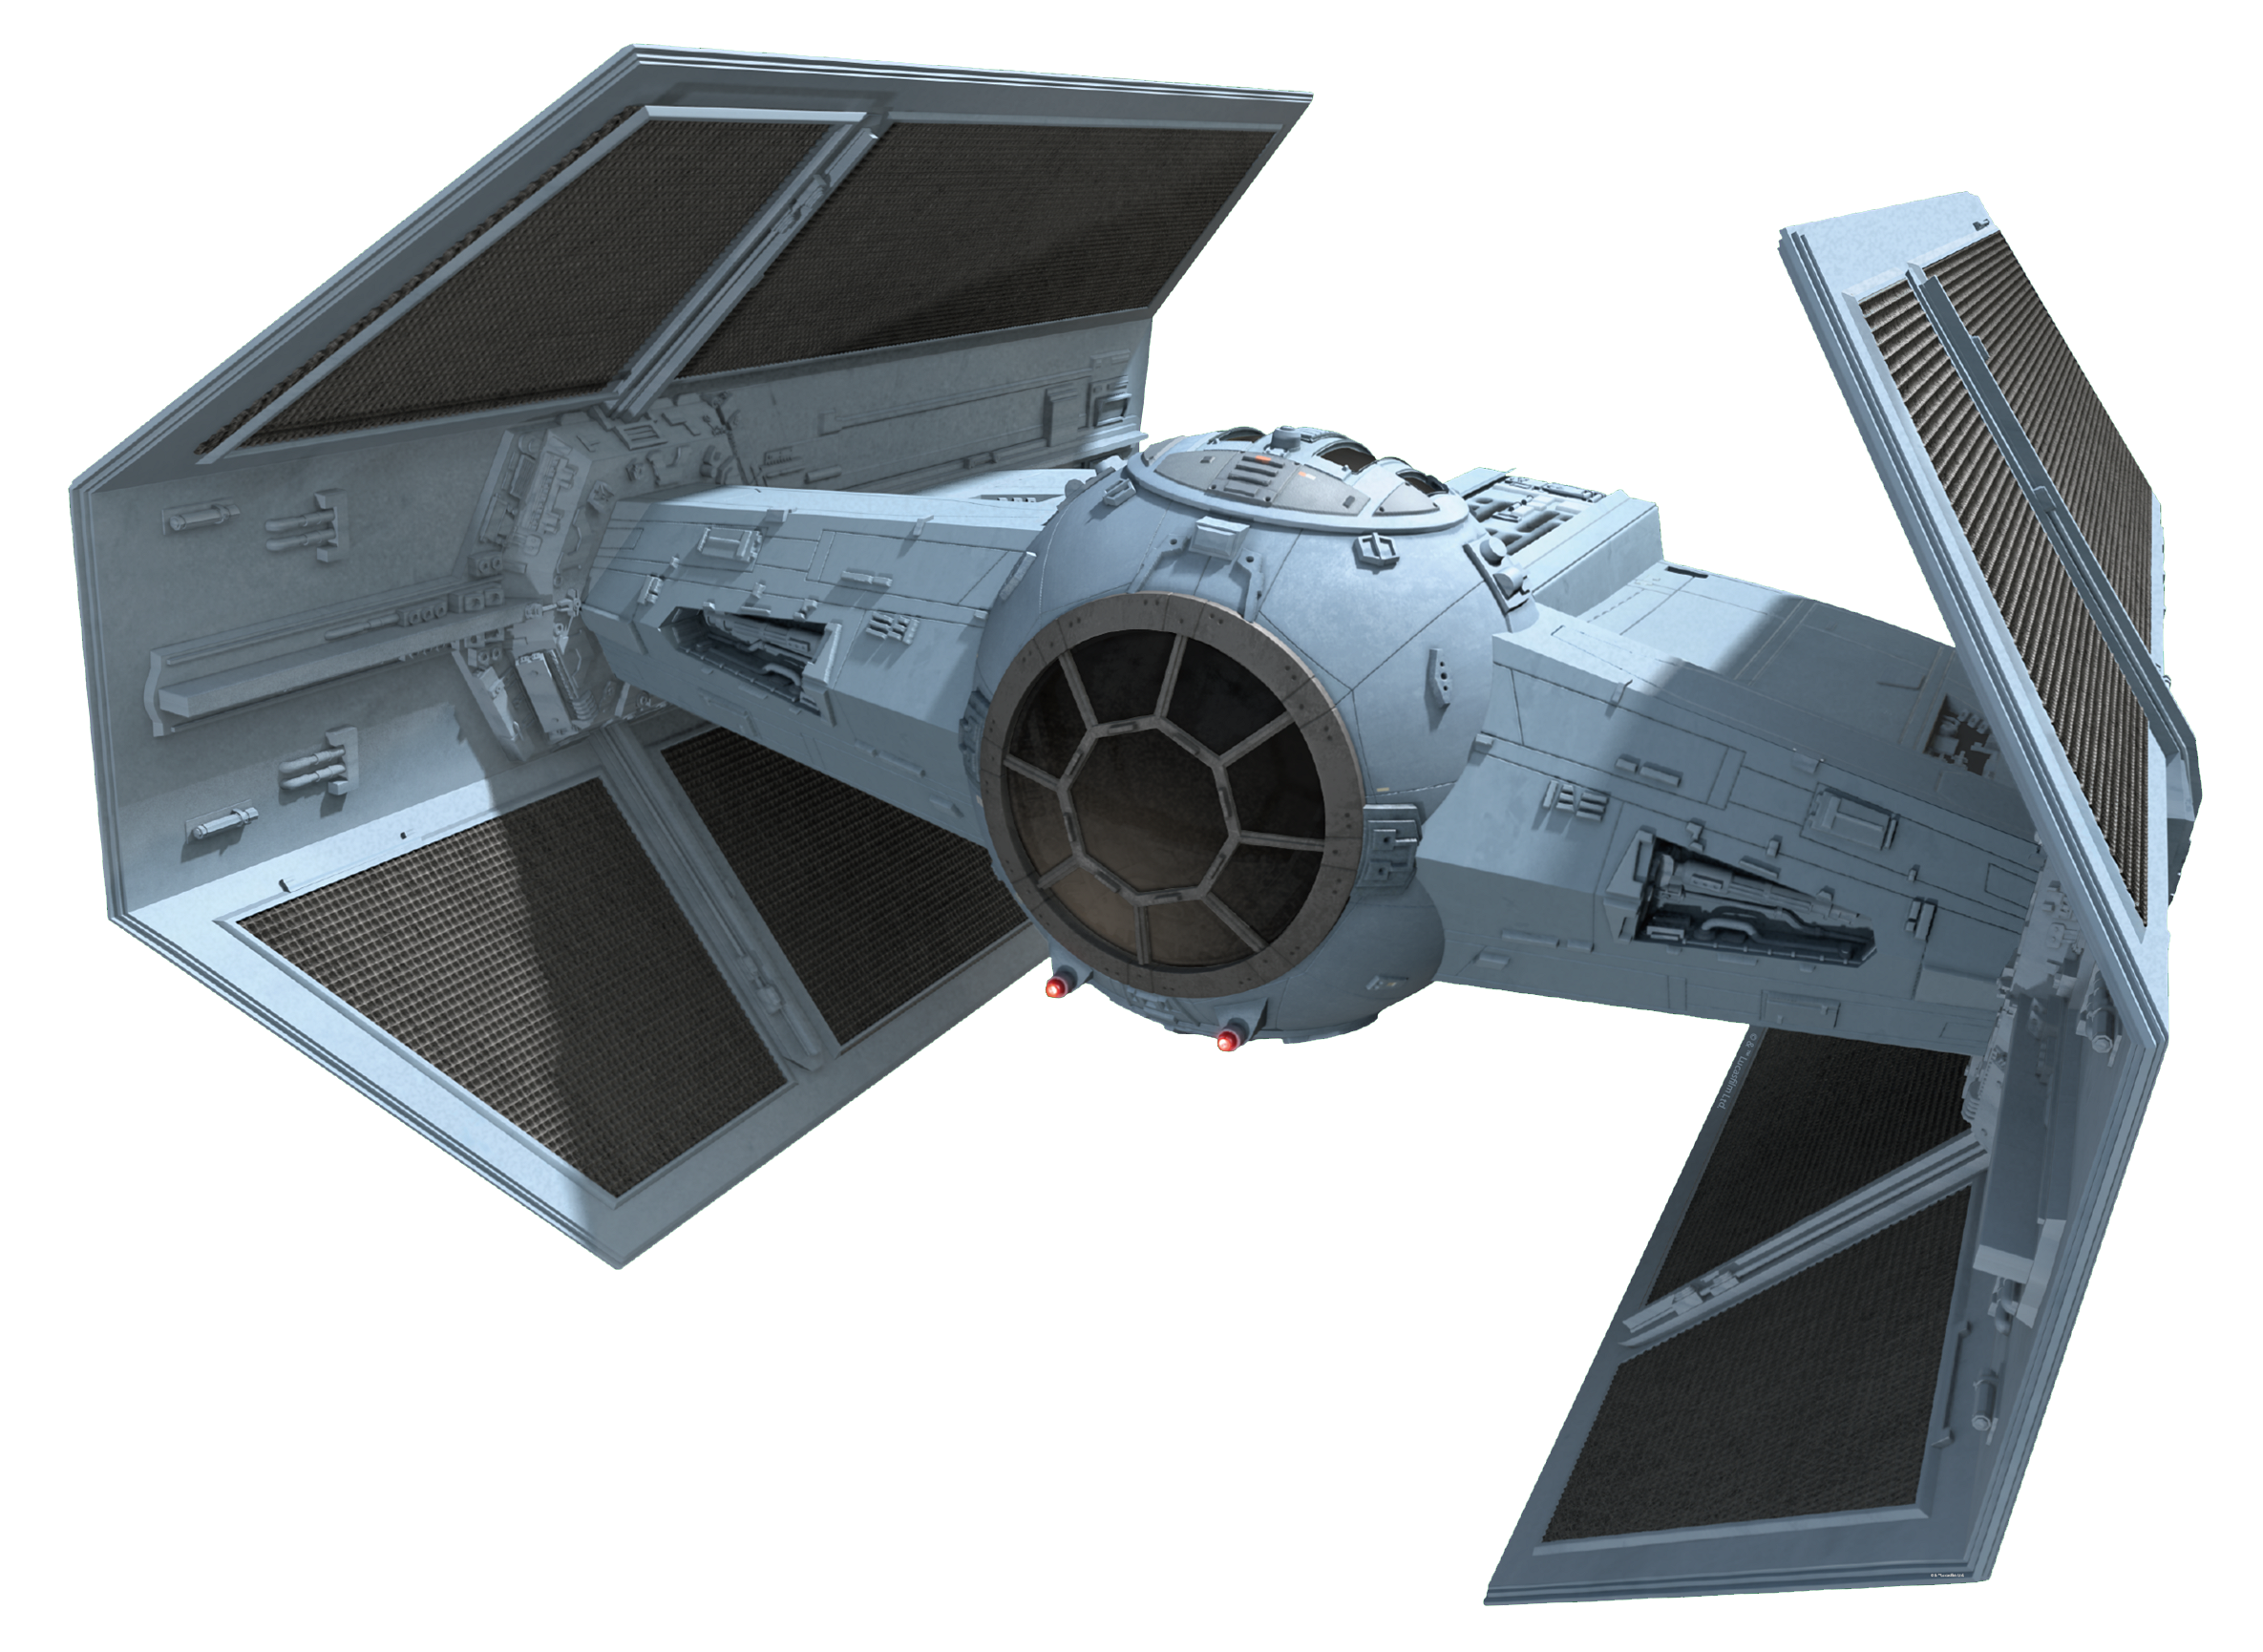 http://img2.wikia.nocookie.net/__cb20150210062626/starwars/images/2/24/TIE_Advanced_x1_starfighter_2.png